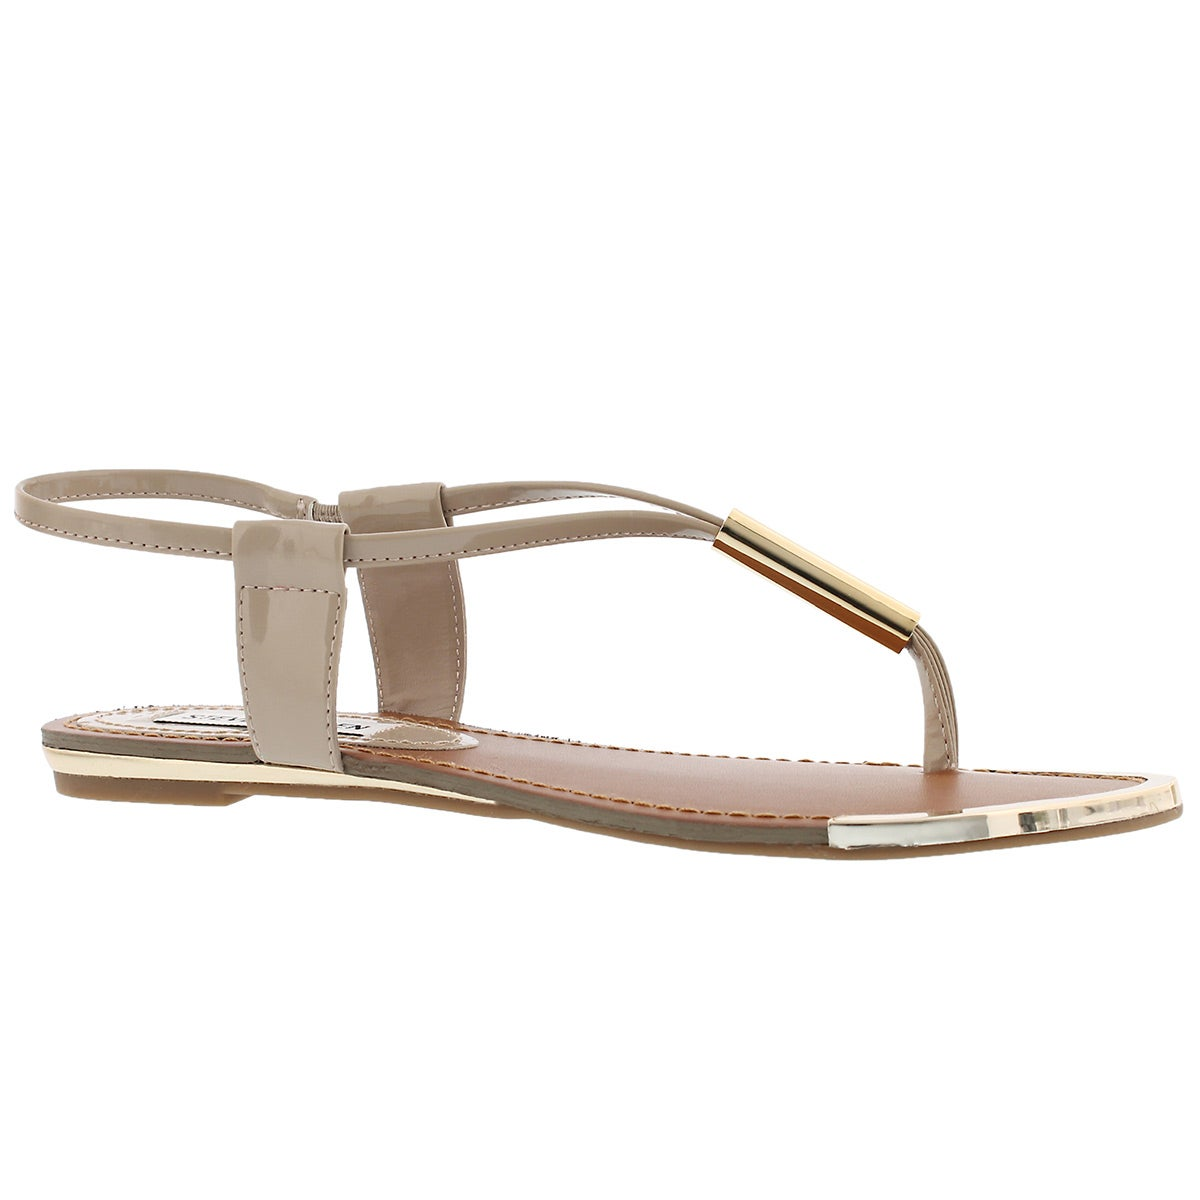 Women's HOLLAND blush t-strap thong sandals